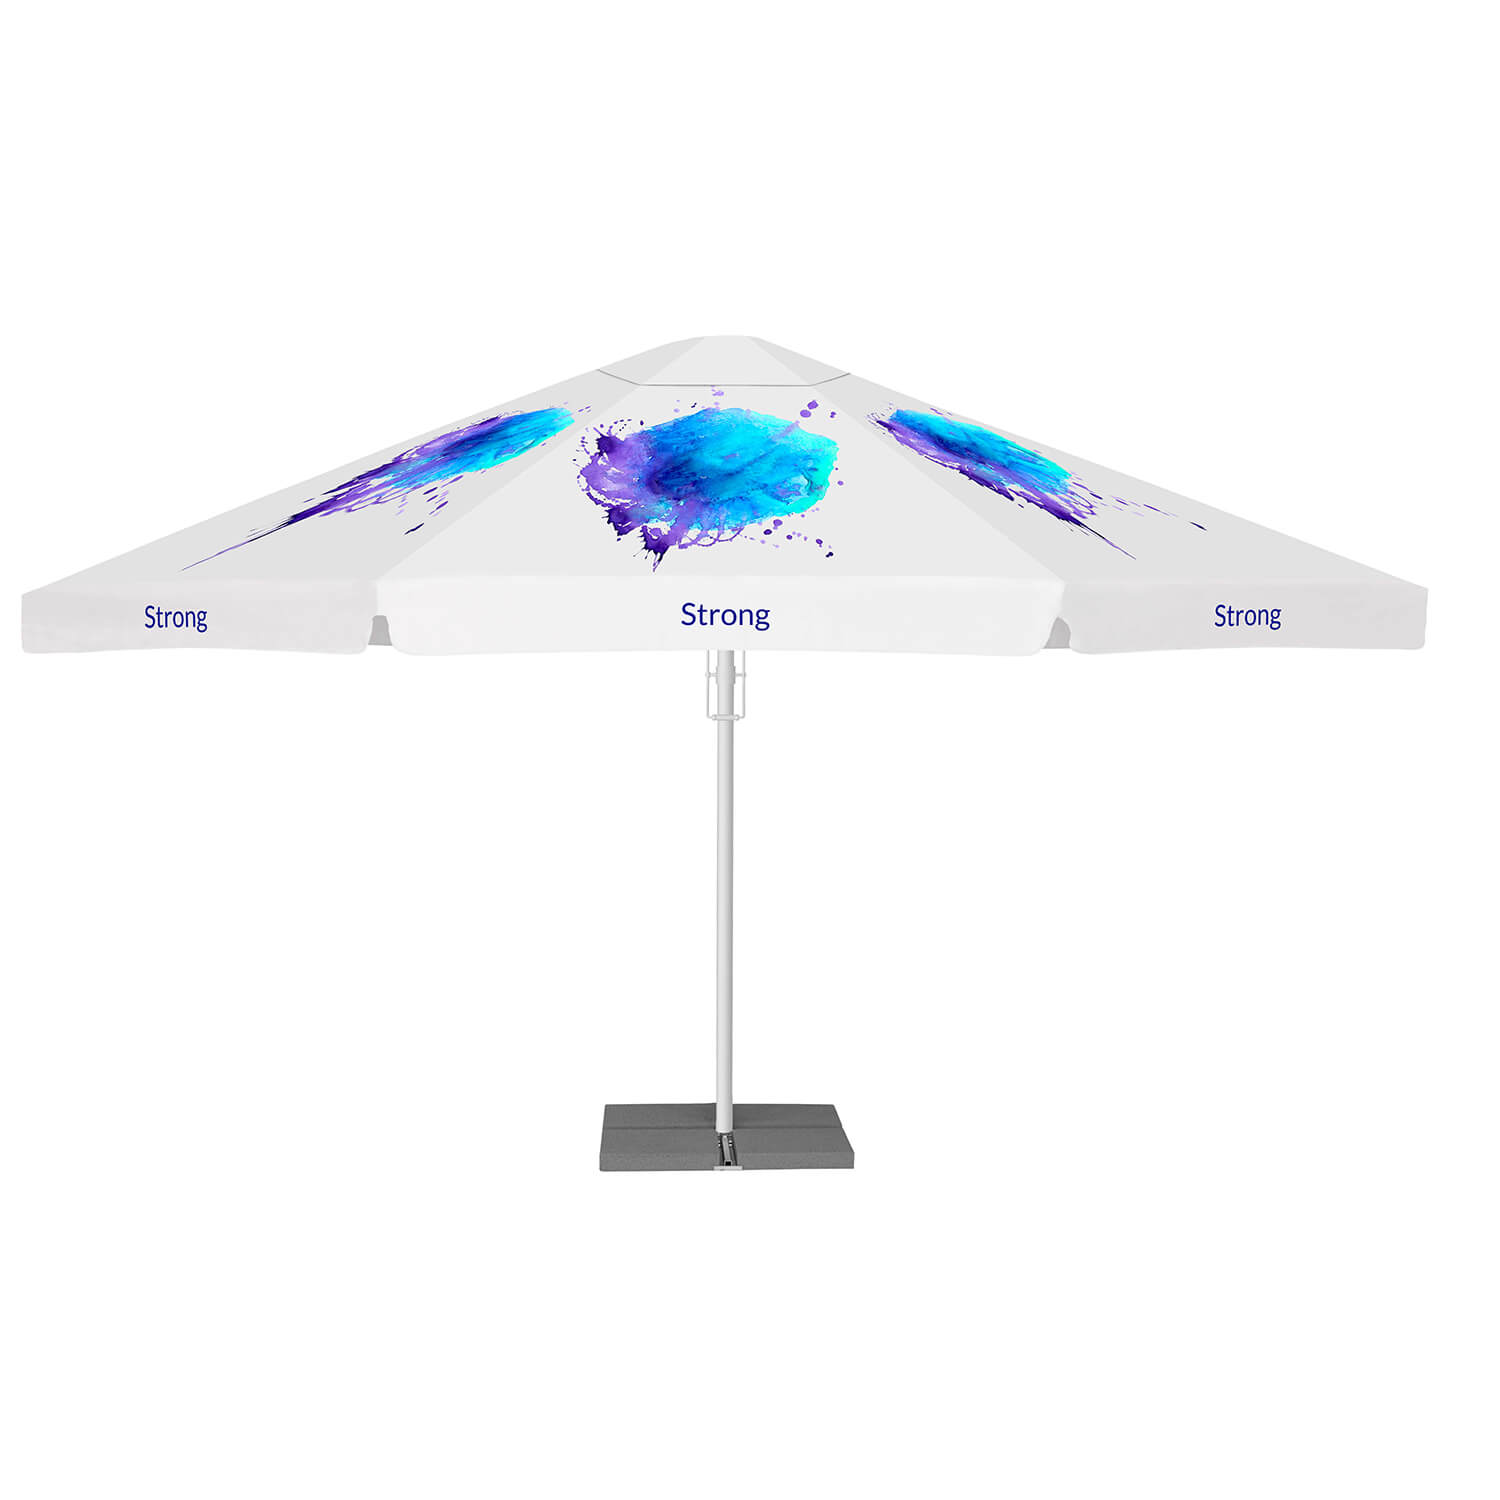 2. Strong advertising parasols